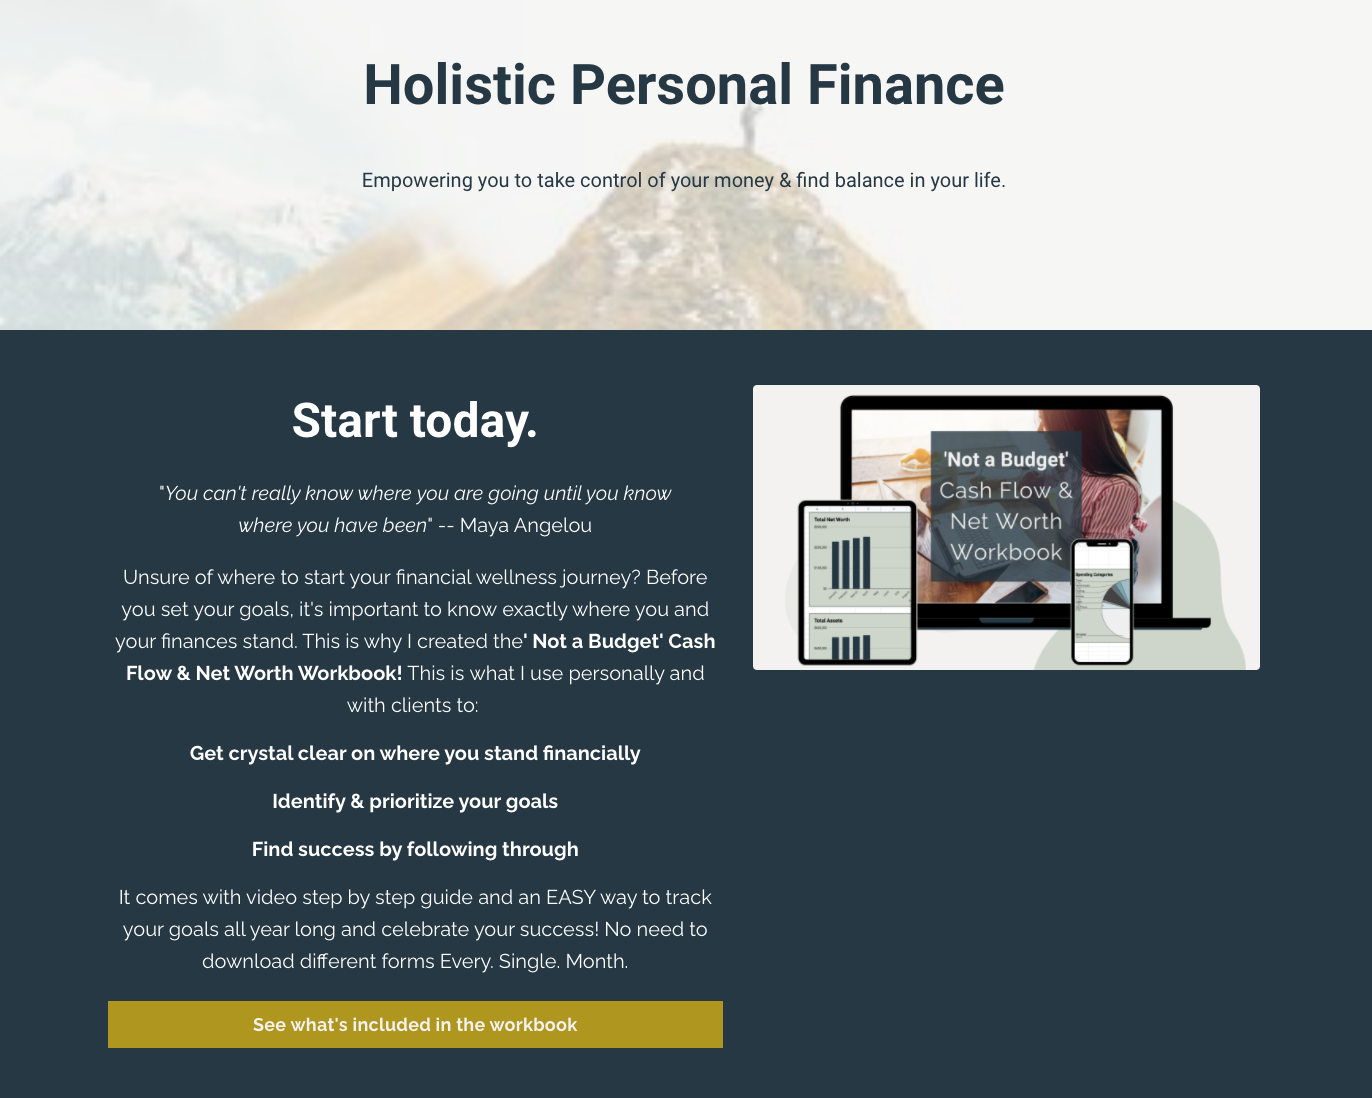 screenshot of the Holistic Personal Finance website with copy about starting today with the 'Not a Budget' Cash Flow and Net Worth Workbook